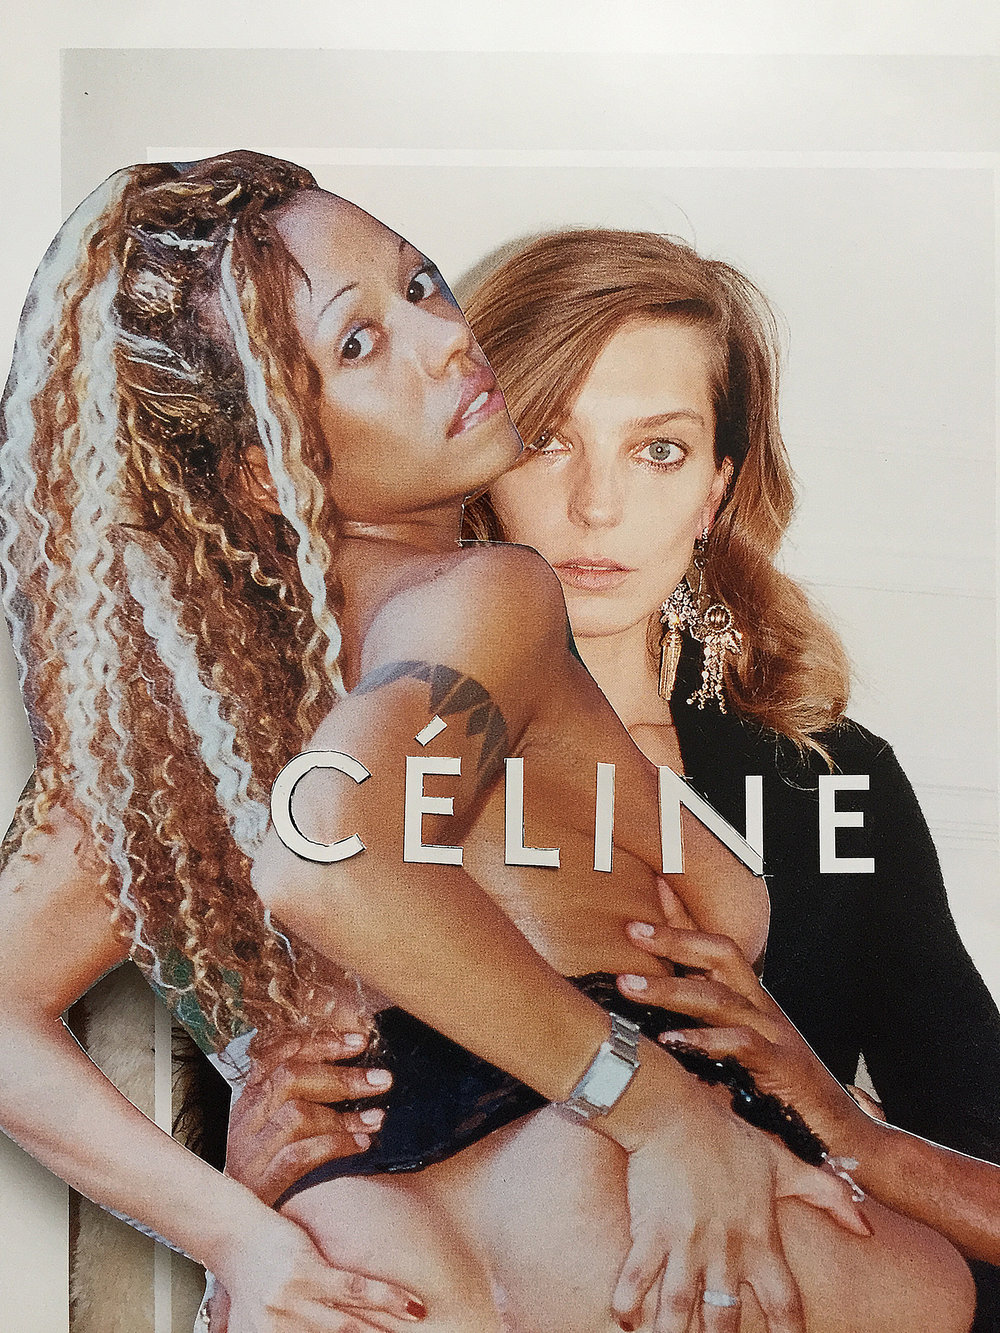 Celine2Girls02.jpg